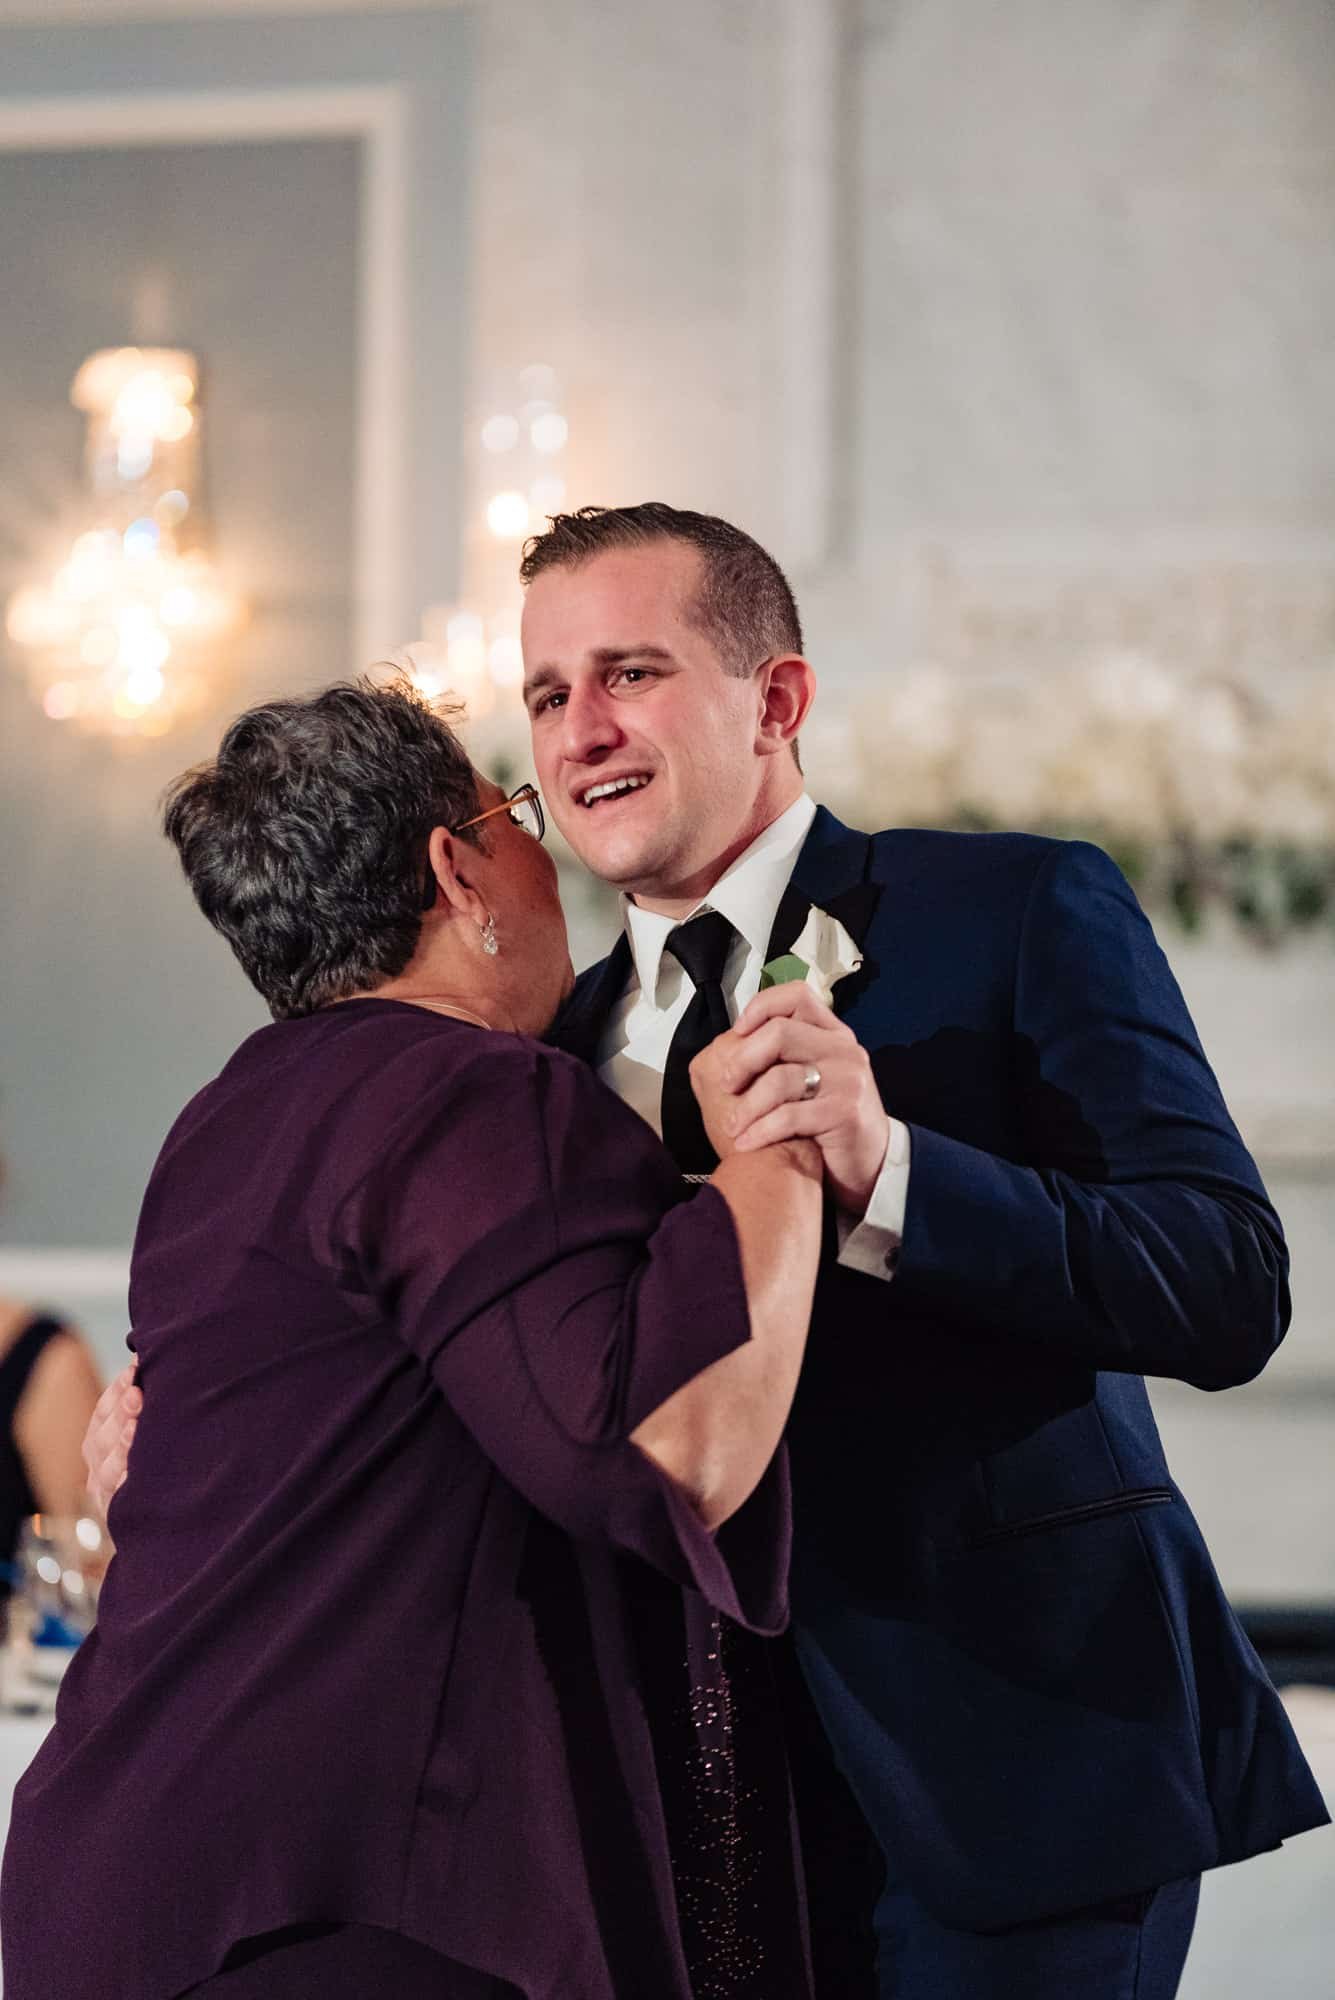 Groom dancing with his mother at an Arts Ballroom Wedding